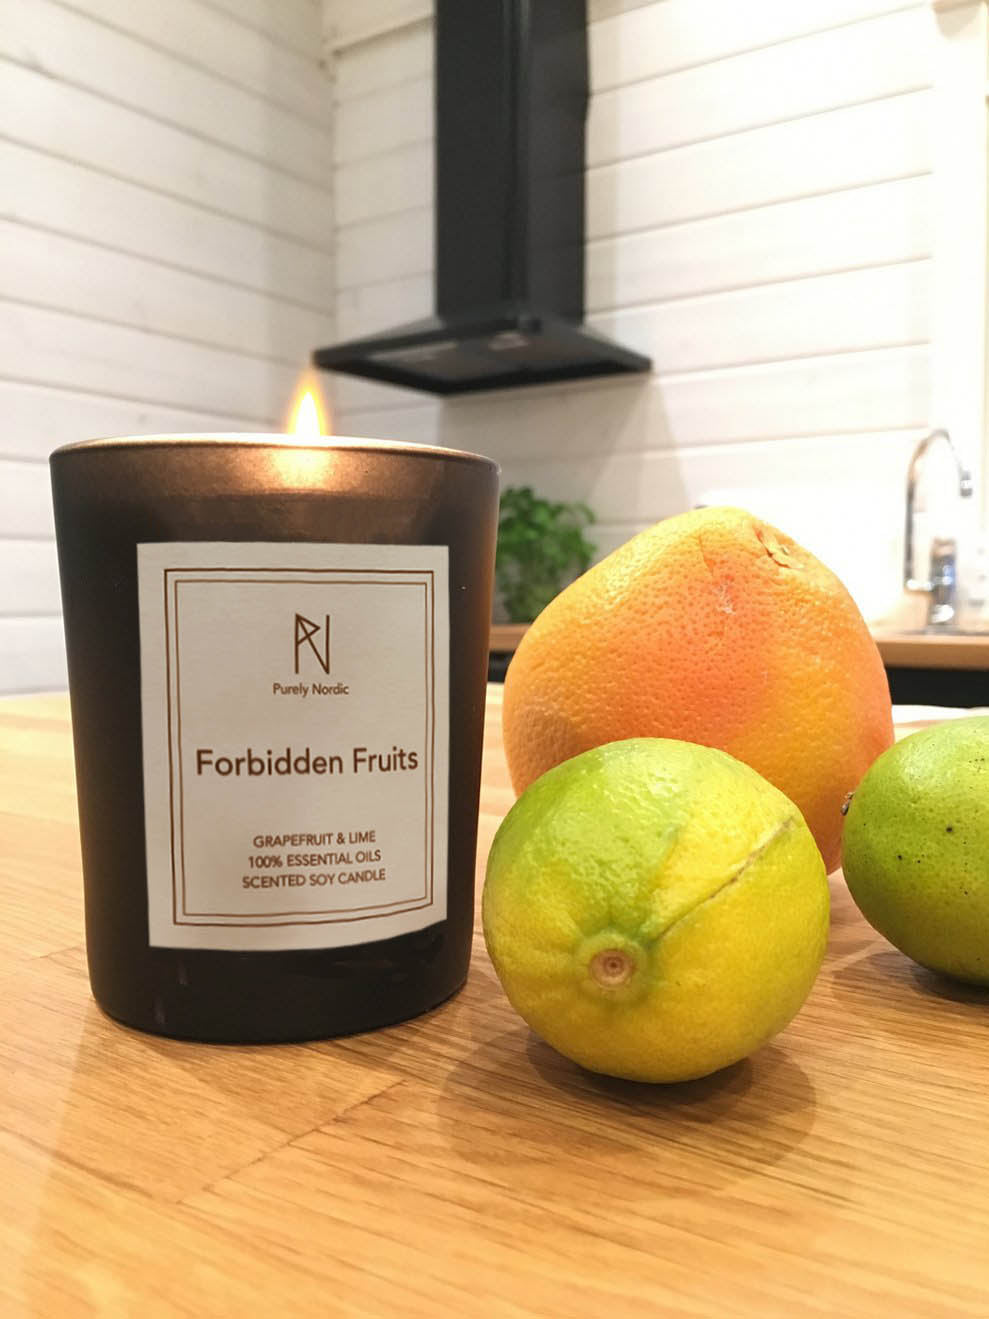 Forbidden Fruits - Grapefruit & Lime